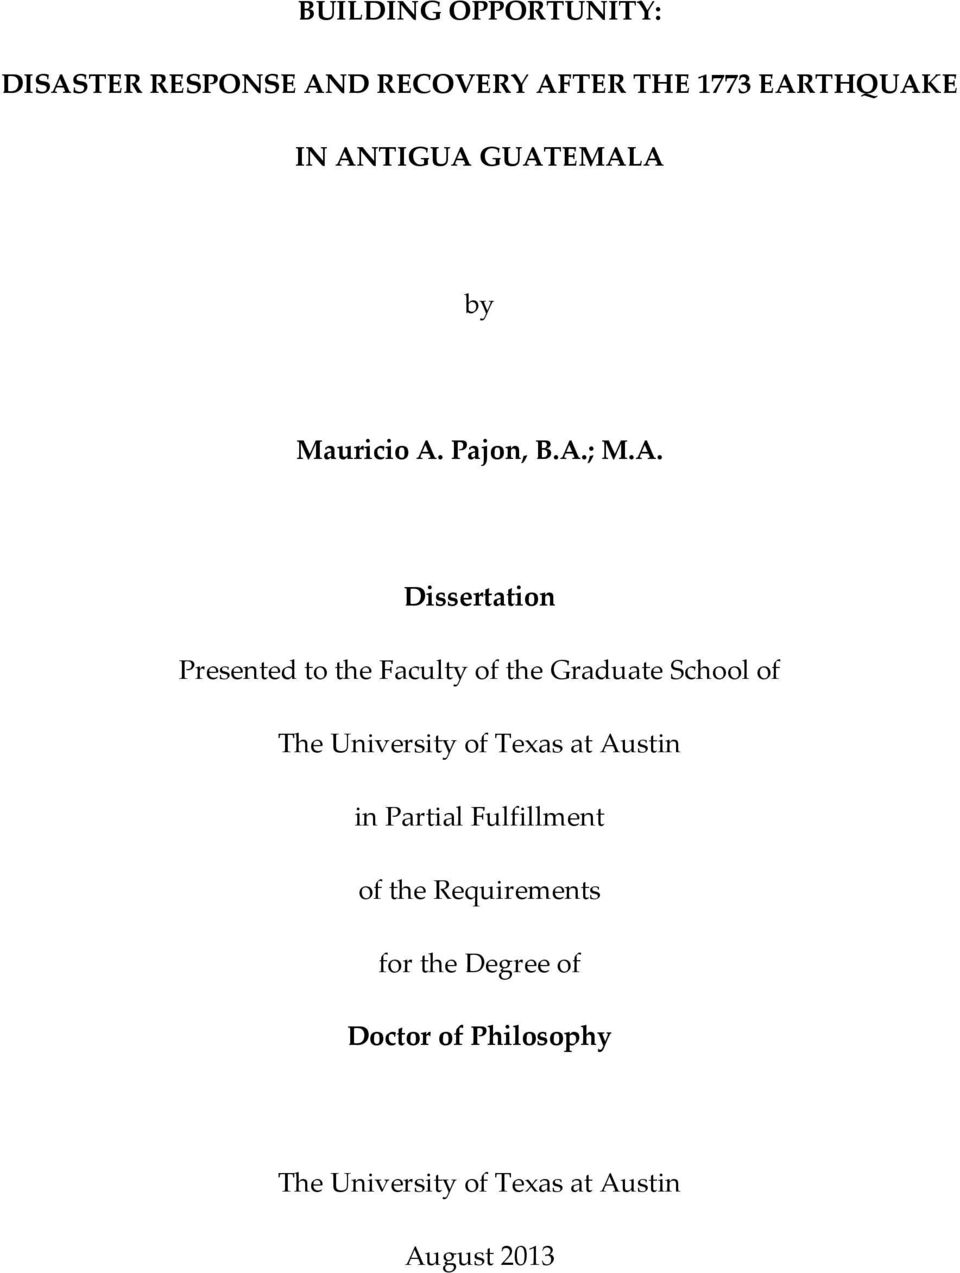 Graduate School of The University of Texas at Austin in Partial Fulfillment of the